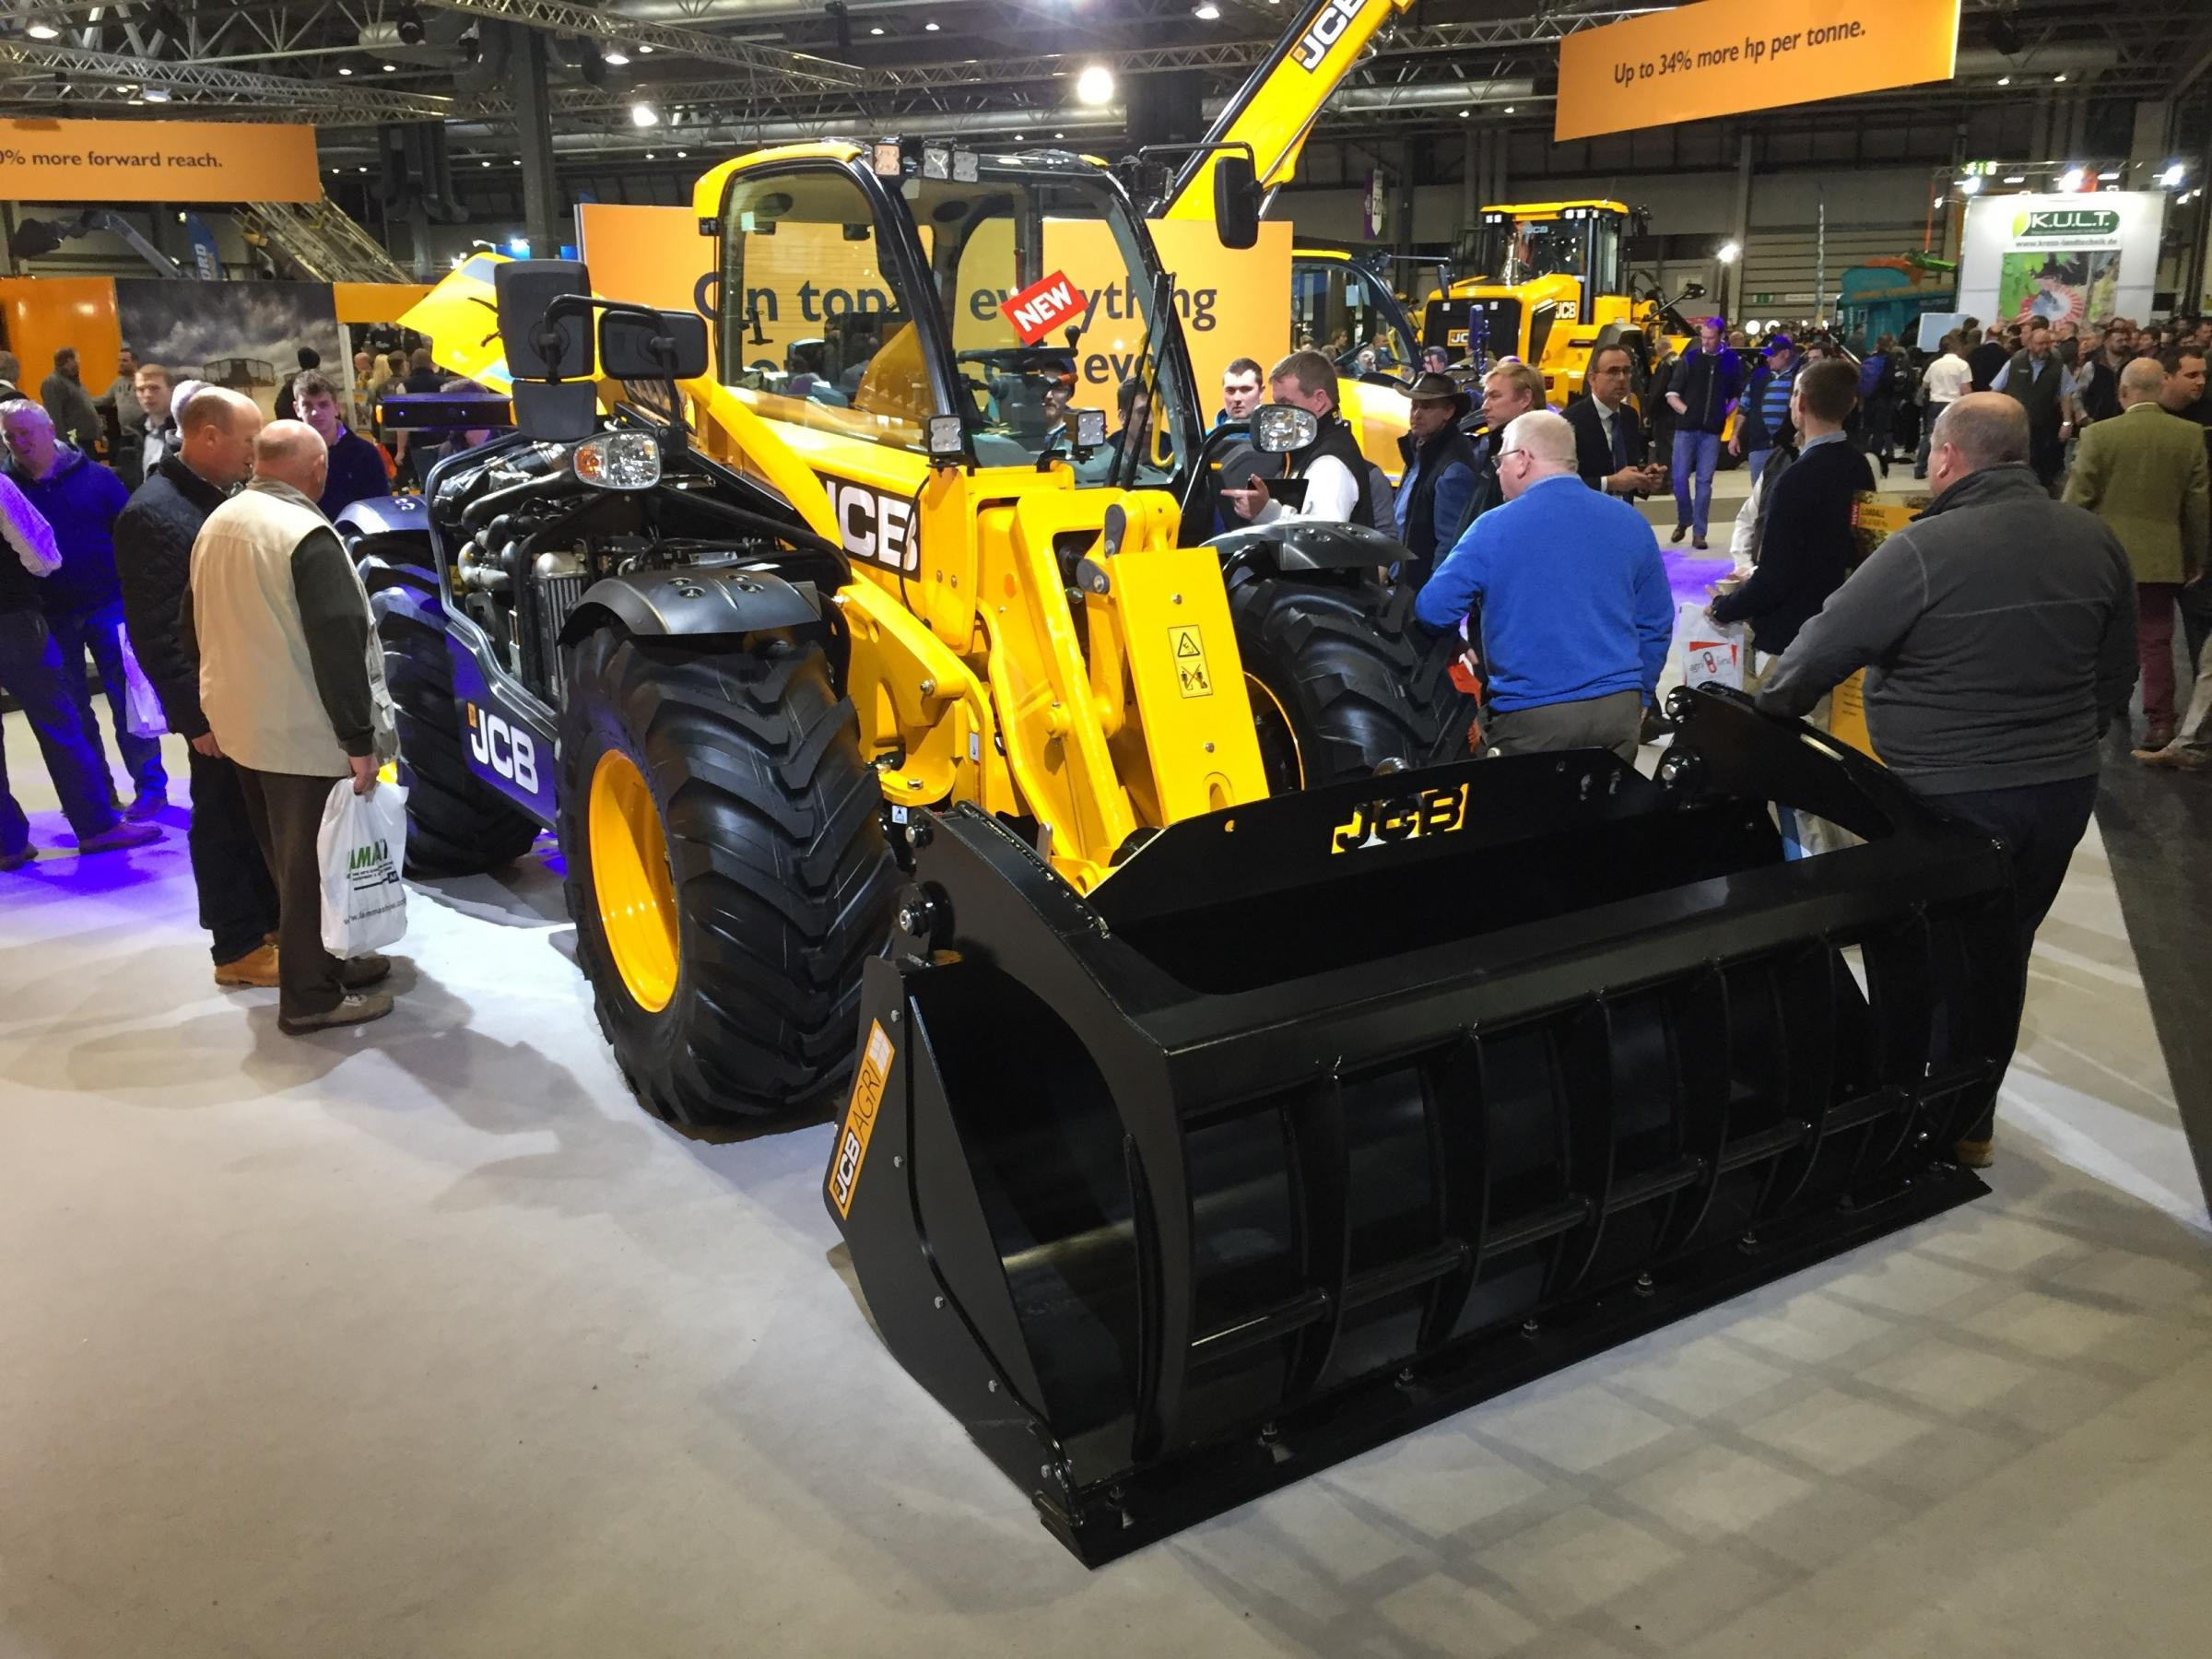 THE NEW JCB Loadalls with the CommandPlus cab were some of the stars of LAMMA